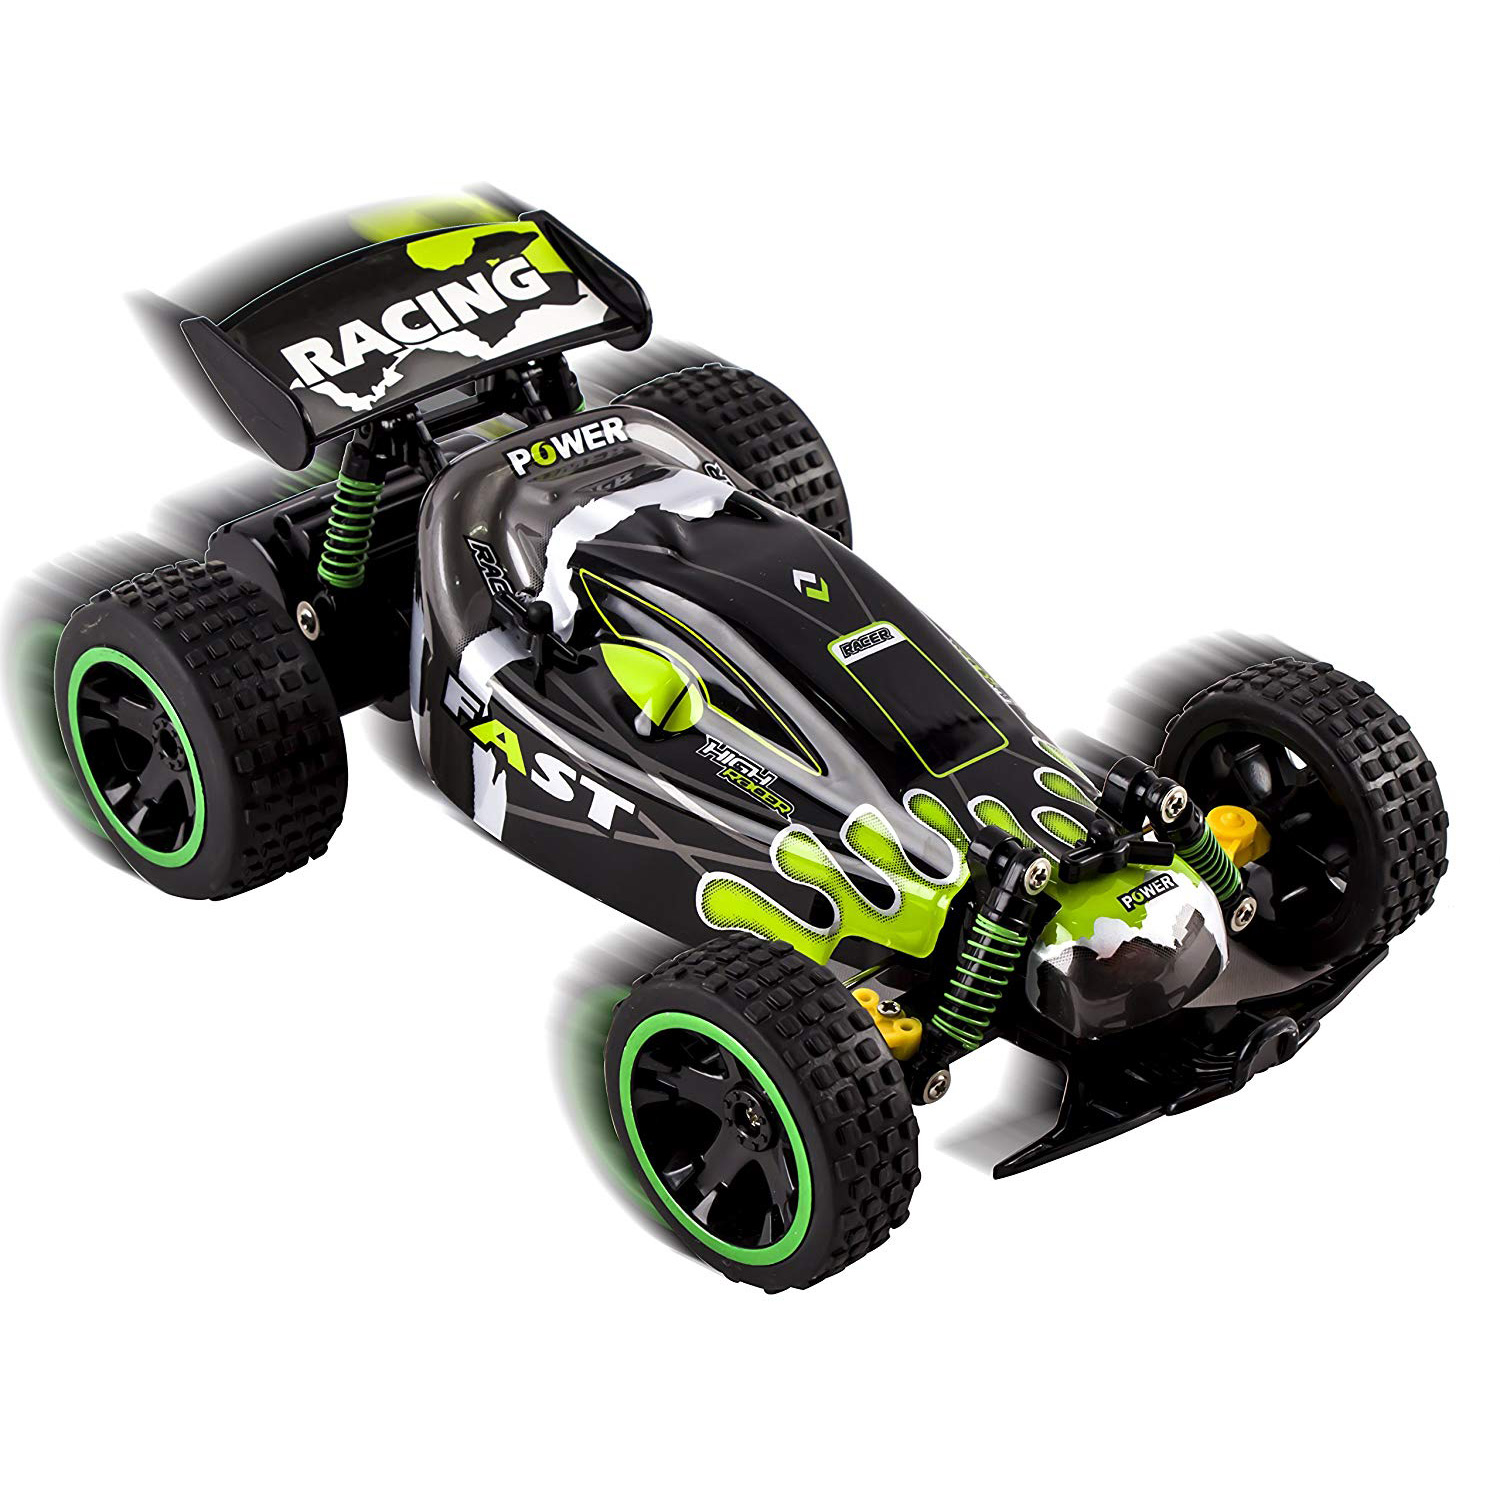 RC Buggy Truck 24Ghz System 118 Scale Remote Control High Speed Power With Working Off-Road Suspension Ready to Run Indoor And Outdoor Radio Car Toy Green